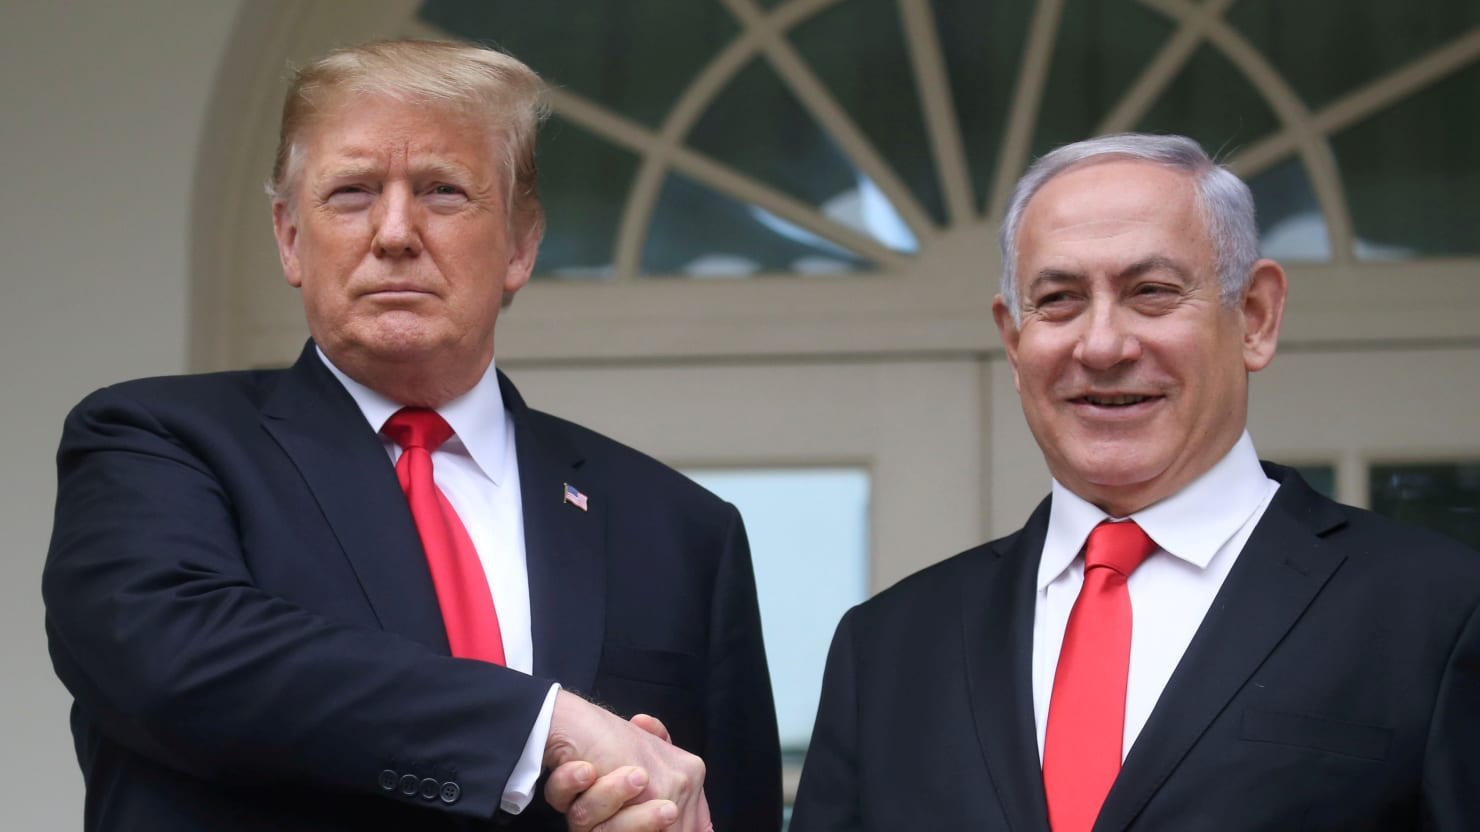 Netanyahu Wants to Name Golan Heights Town After Trump